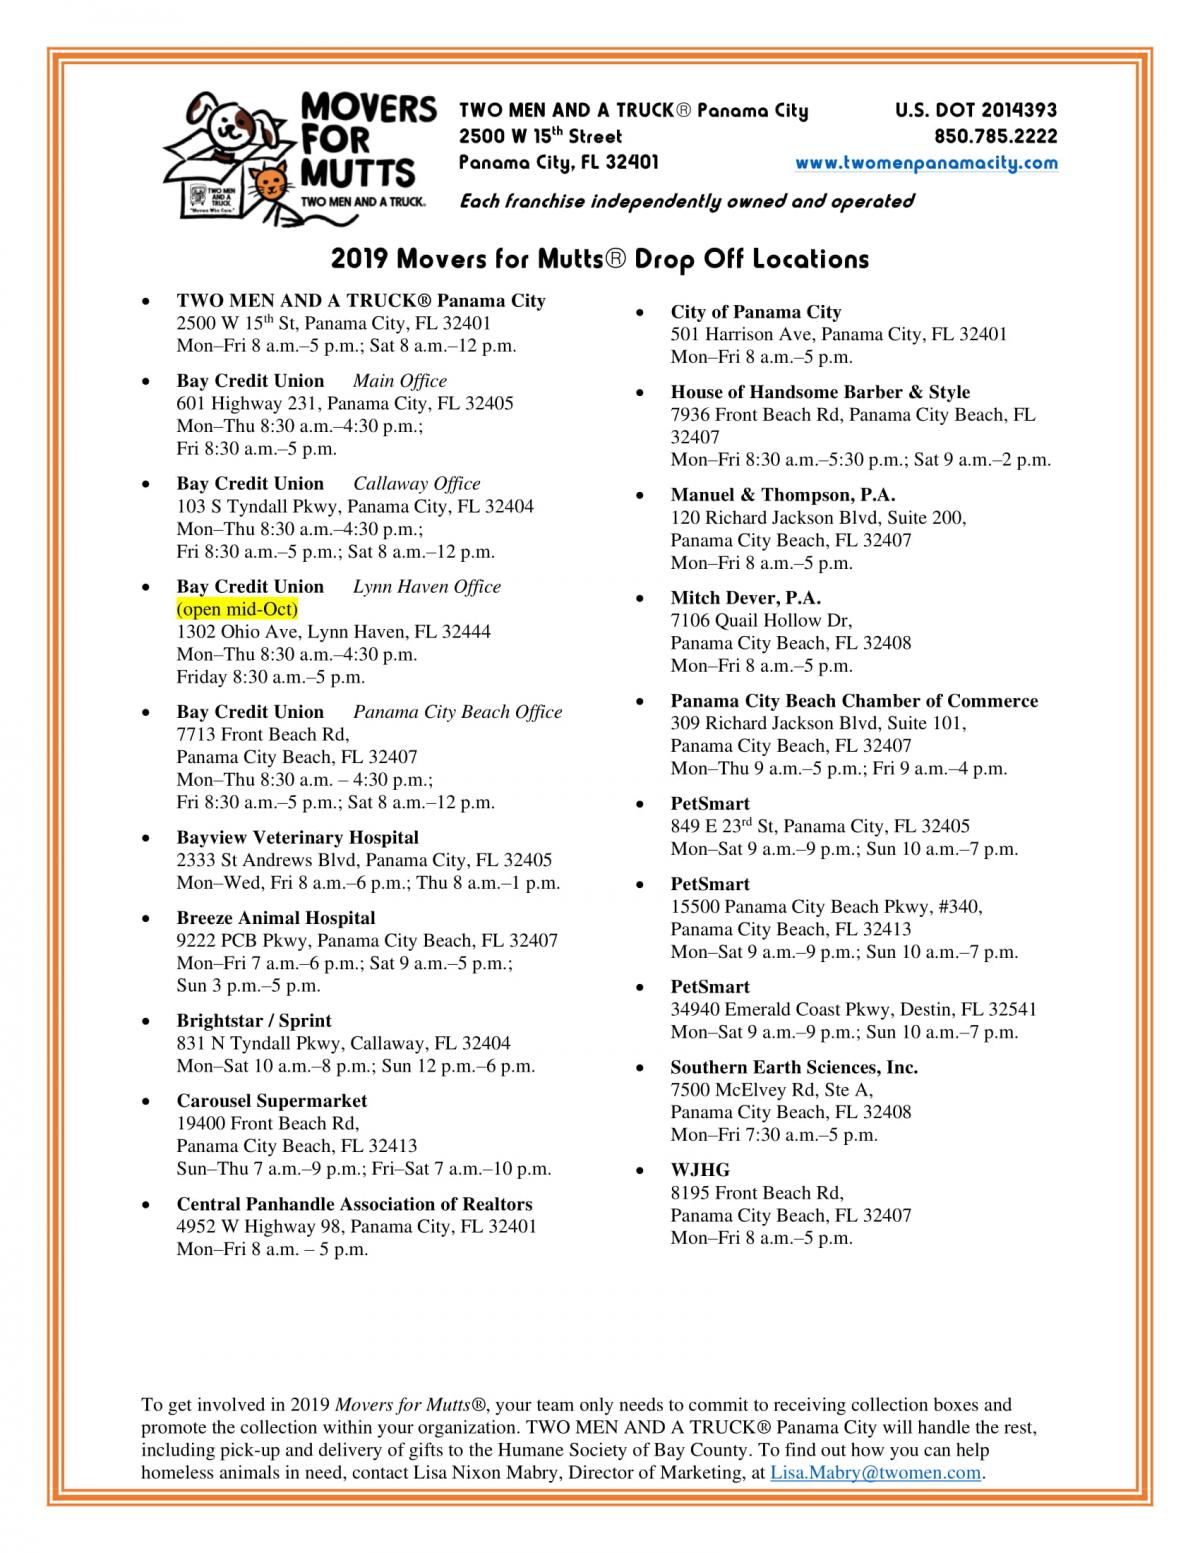 2019 Movers for Mutts Drop Off Locations